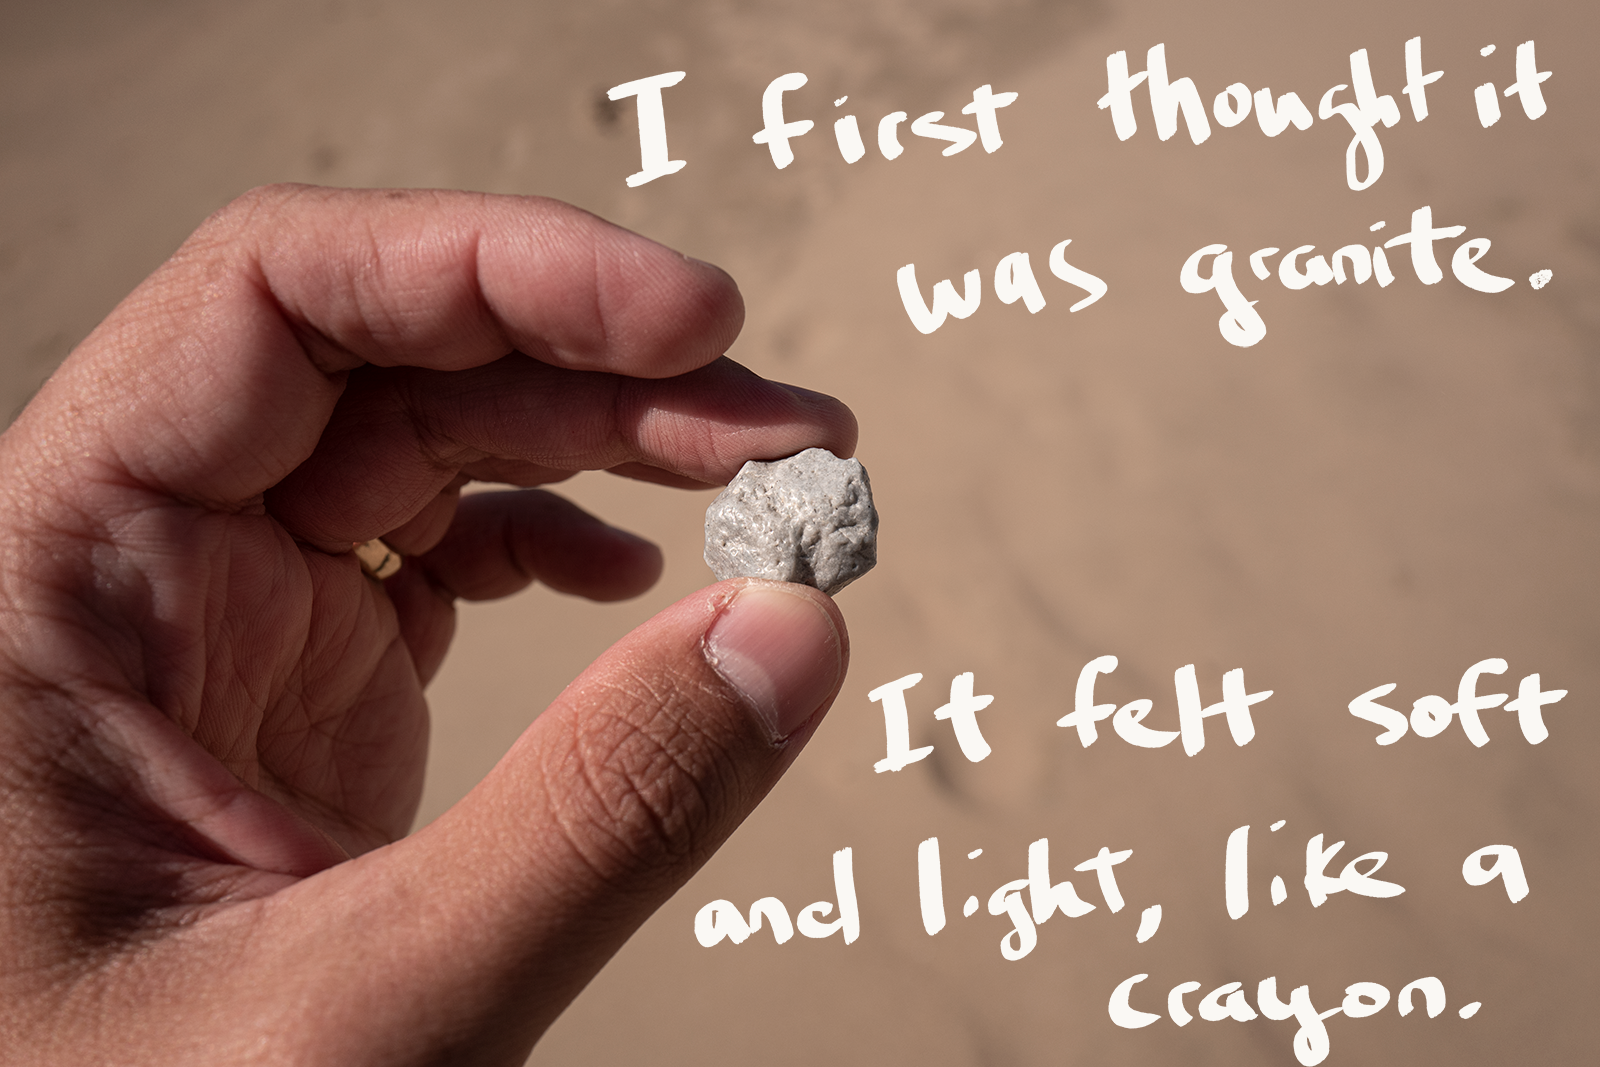 """An image of a hand holding a gray piece of what looks like a rock. There's handwriting on top of the photo that says: """"I first thought it was granite. It felt soft and light, like a crayon."""""""